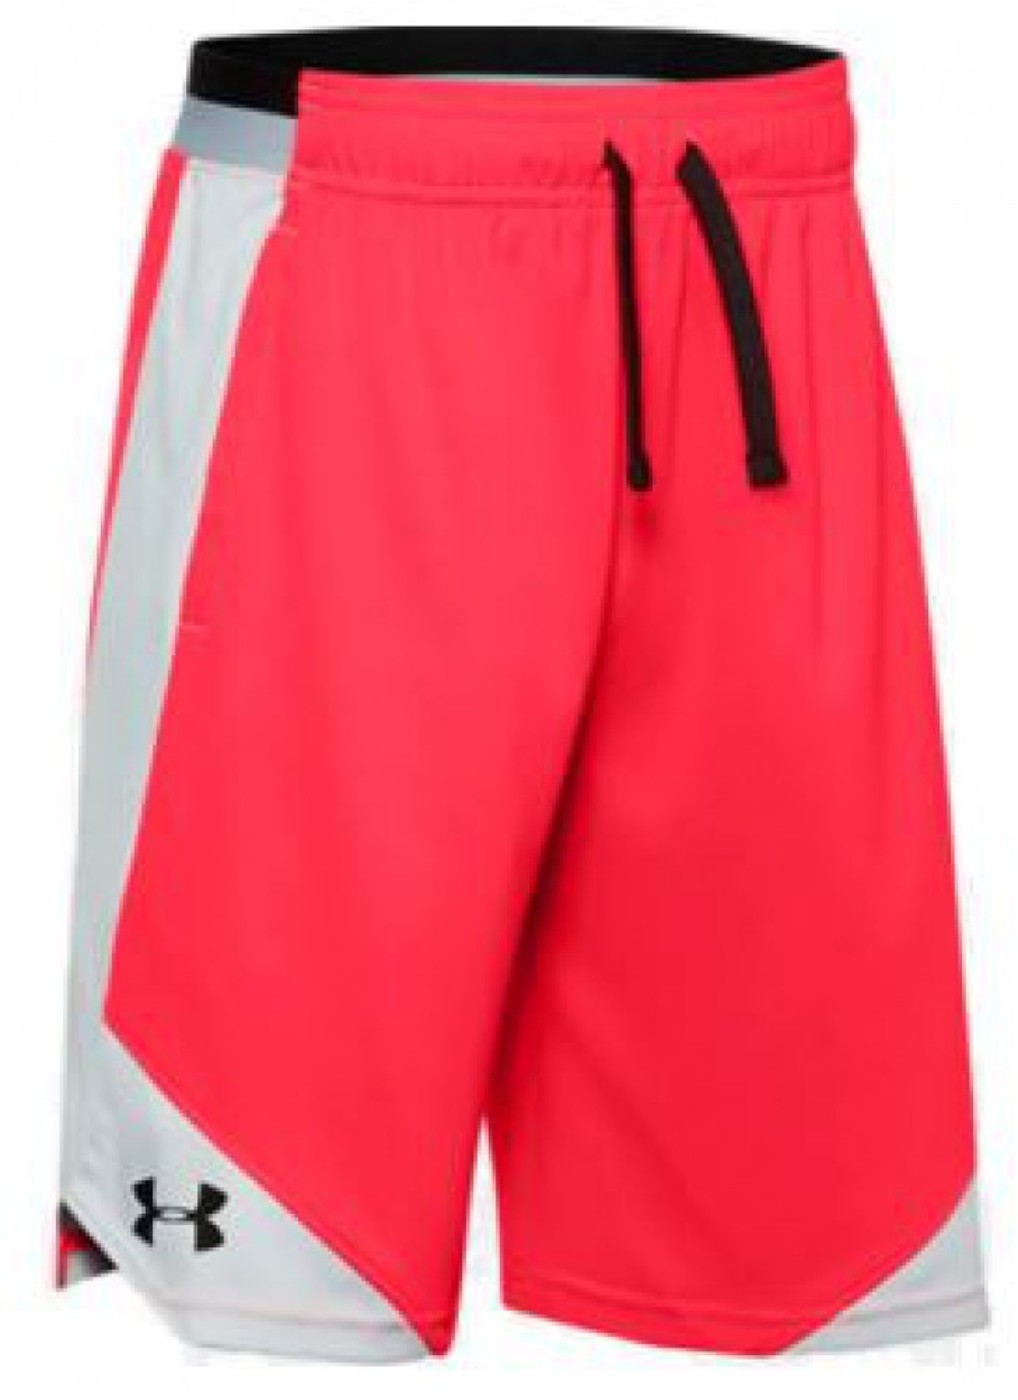 UNDER ARMOUR Stunt 2.0 Shorts - Kinder